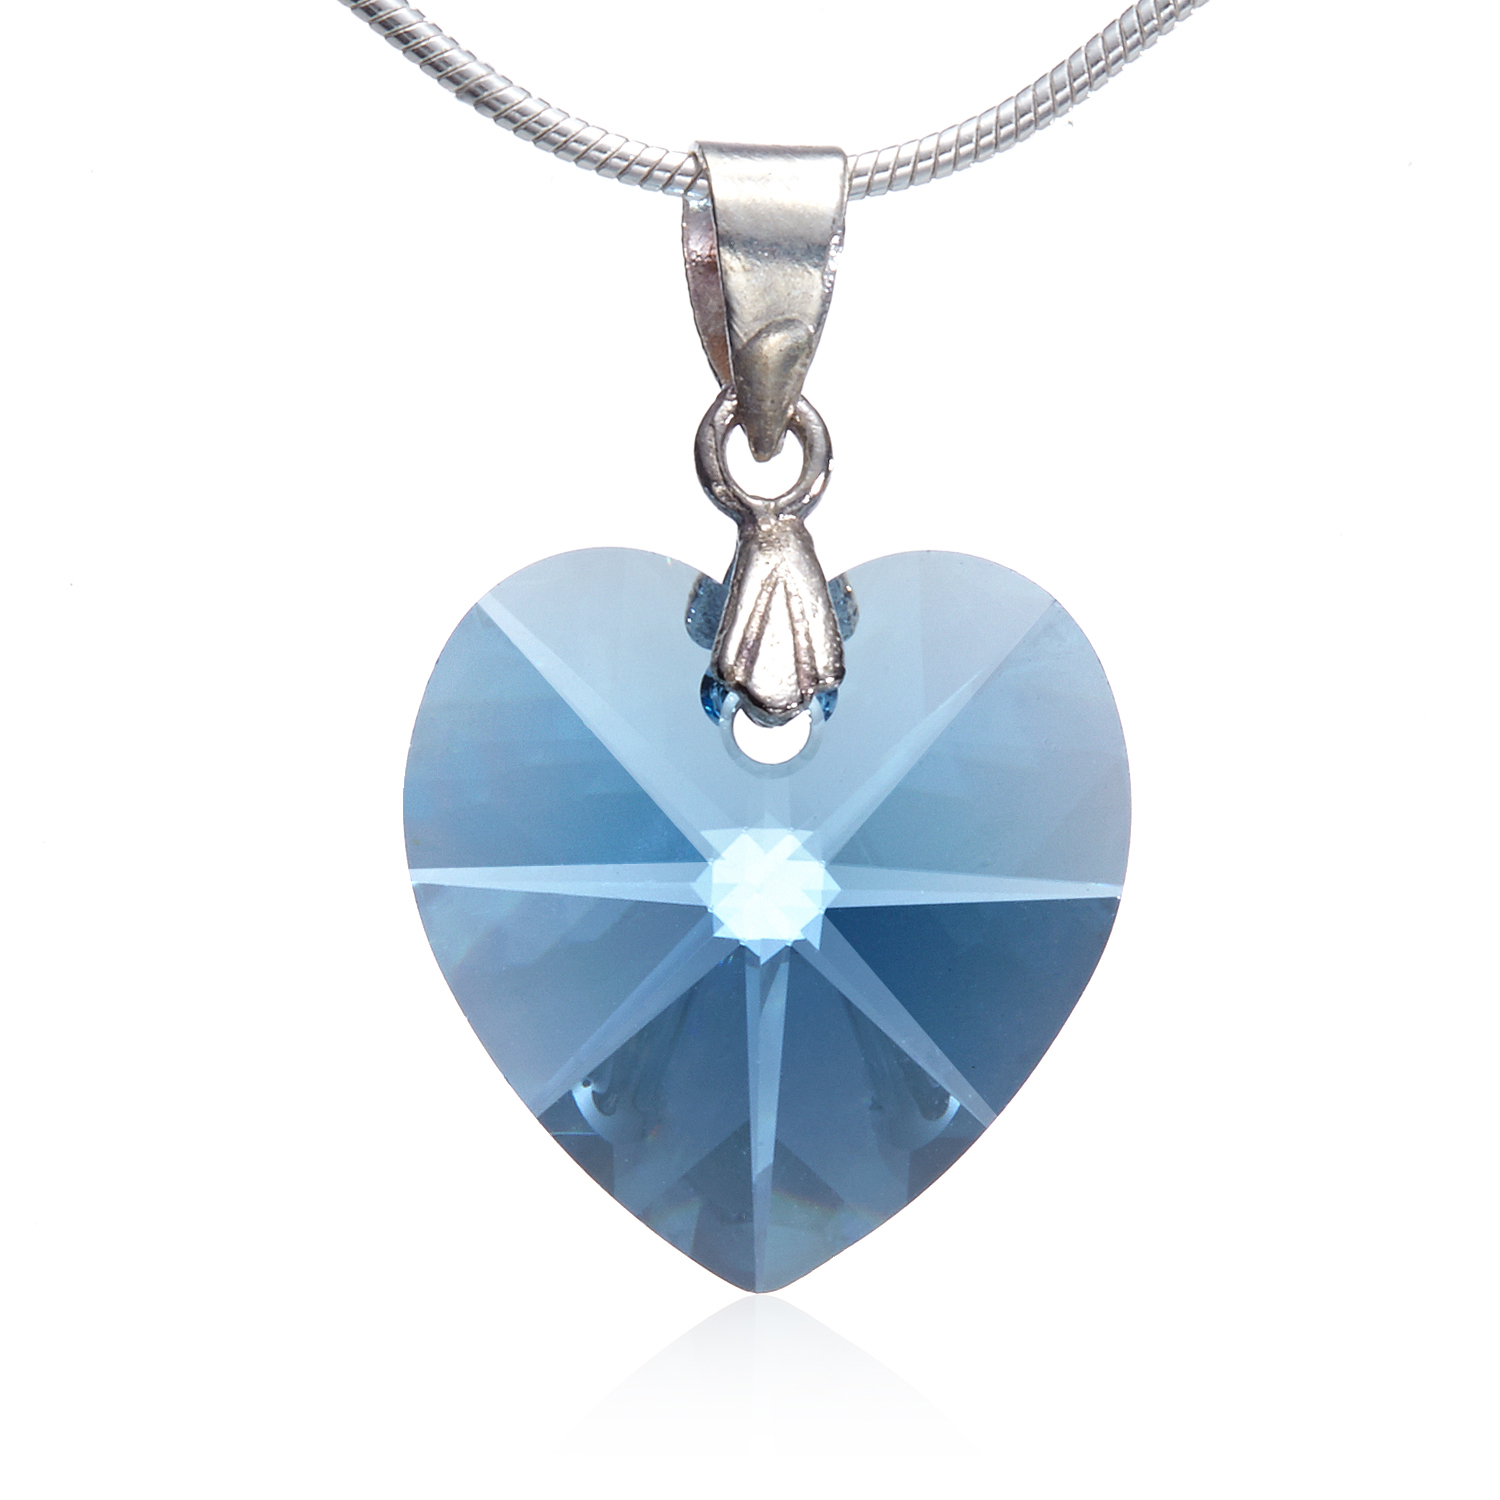 925 Sterling Silver Blue Topaz Heart Pendant Necklace, 18 inches - Nickel Free